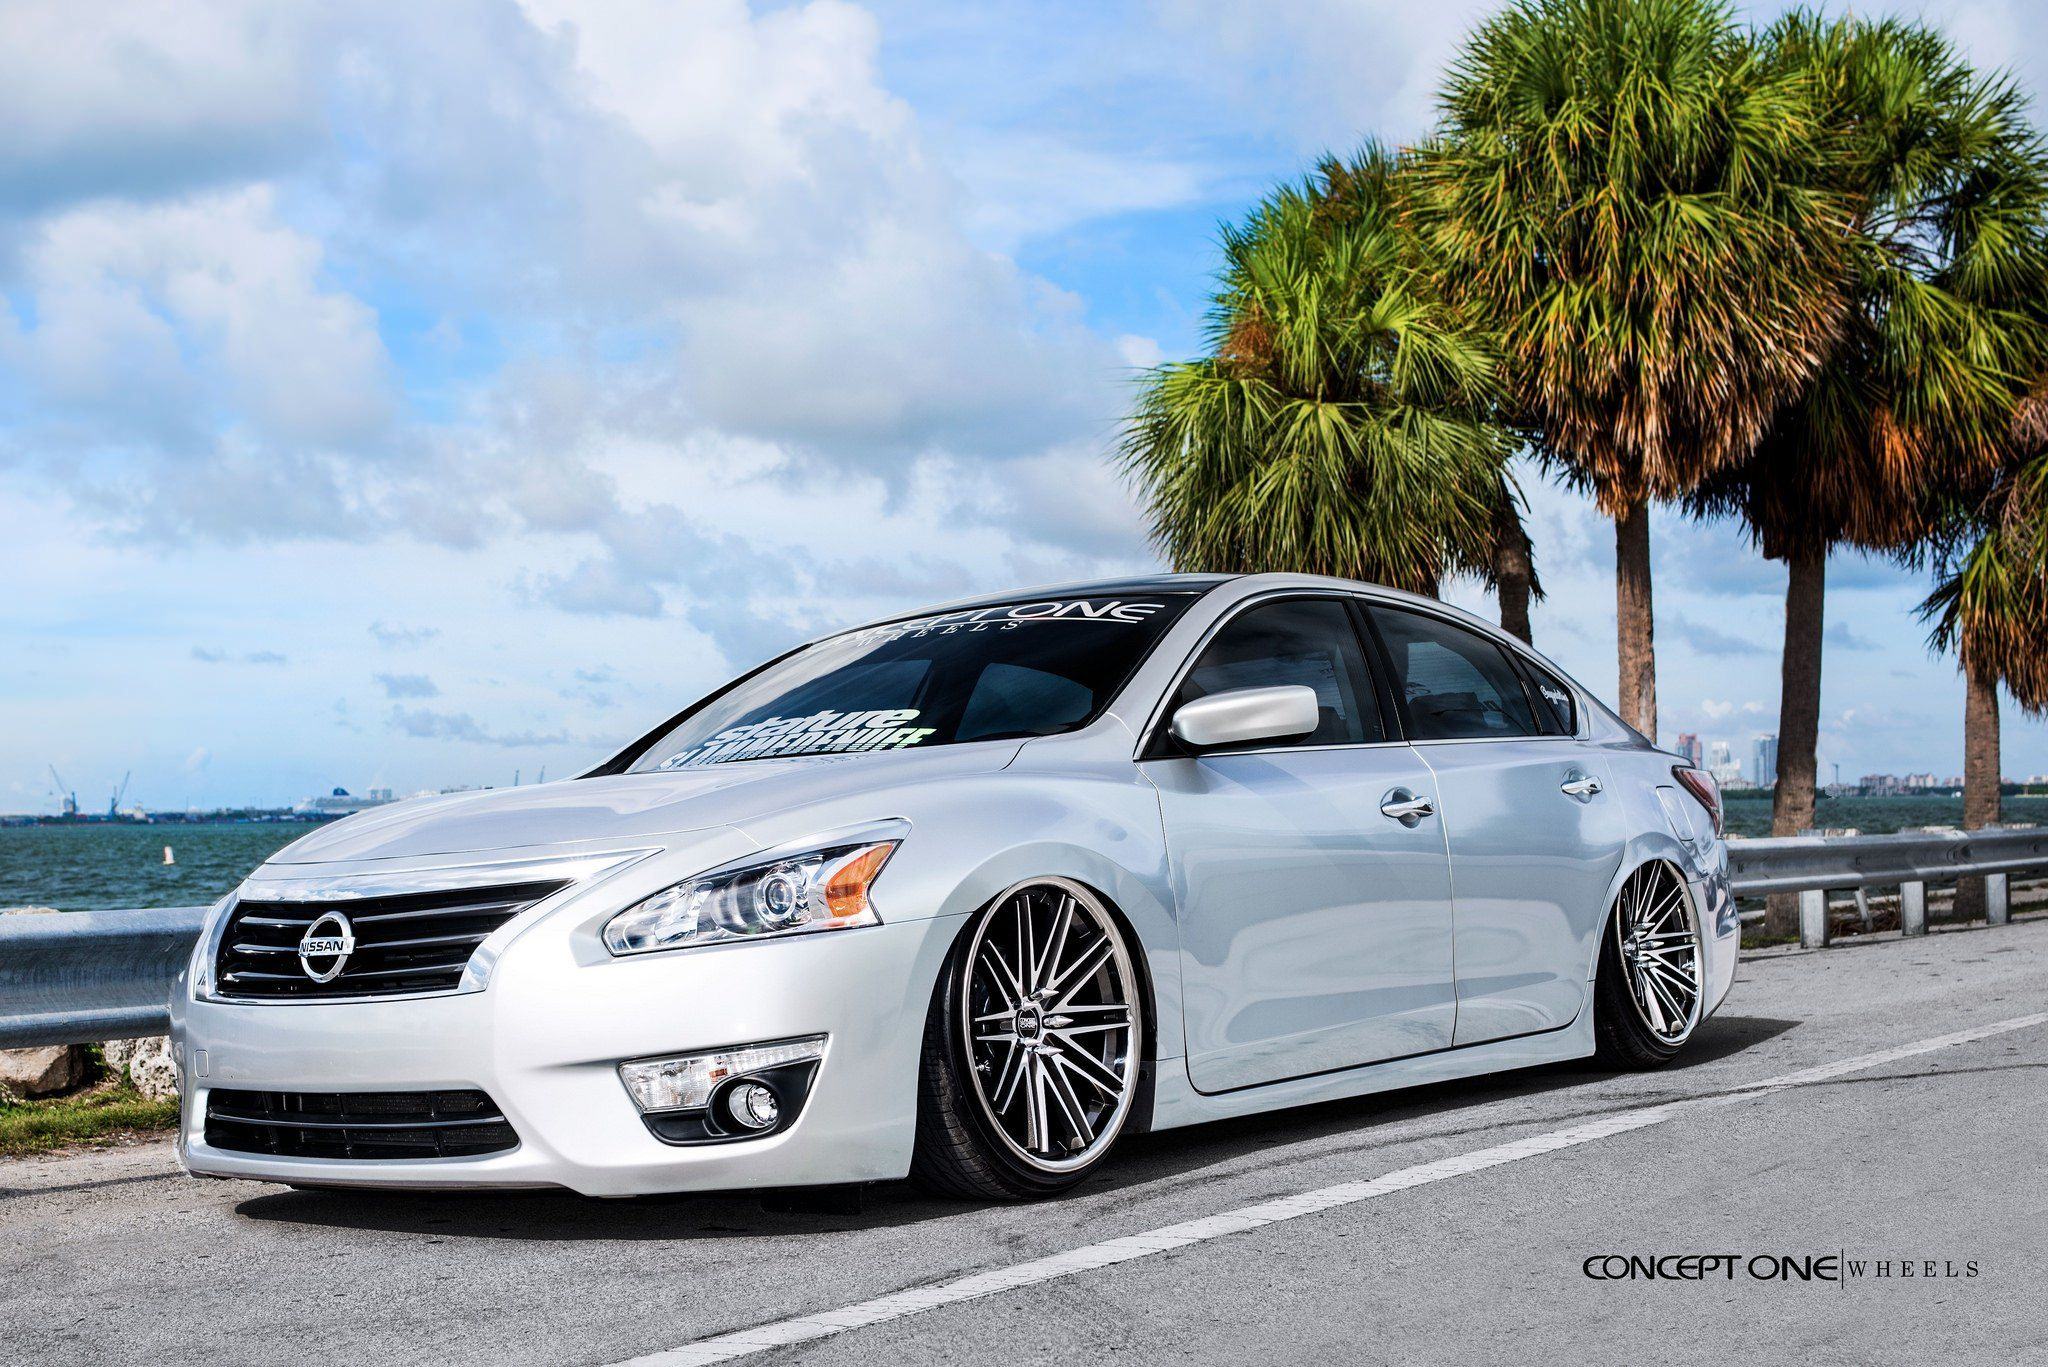 Jaw Dropping White Pearl Debadged Nissan Altima Customized to Amaze